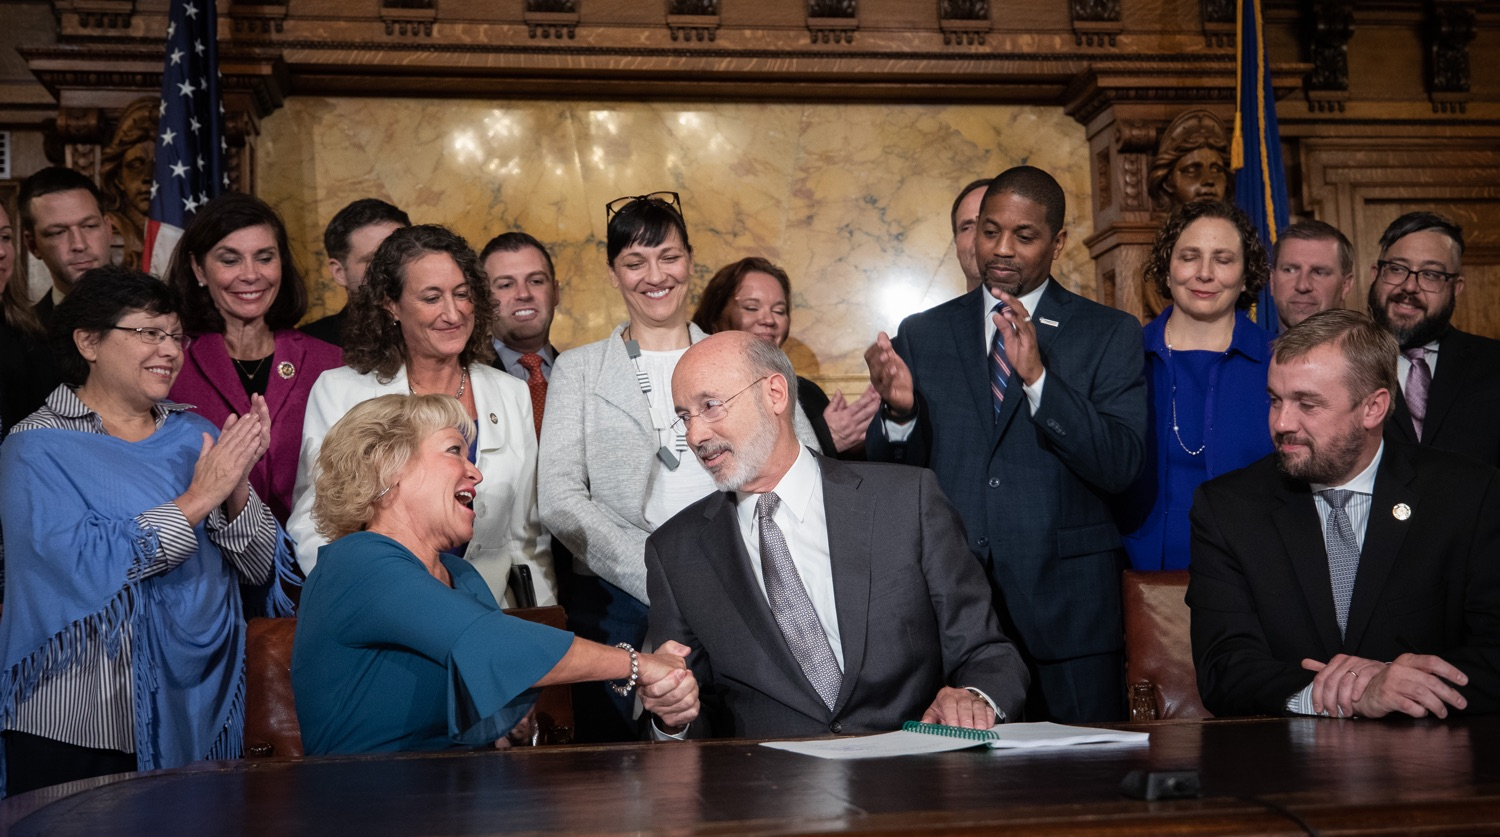 "<a href=""http://filesource.abacast.com/commonwealthofpa/photo/17554_gov_voter_reform_bill_dz_018.jpg"" target=""_blank"">⇣ Download Photo<br></a>Harrisburg, PA  Governor Tom Wolf signs the Election Reform Bill. Governor Wolf made voting more convenient and secure by signing Act 77 of 2019, the most significant improvement to Pennsylvanias elections in more than 80 years. The bipartisan compromise legislation takes effect for the April 2020 primary election and makes Pennsylvania a national leader with voter-friendly election reforms."